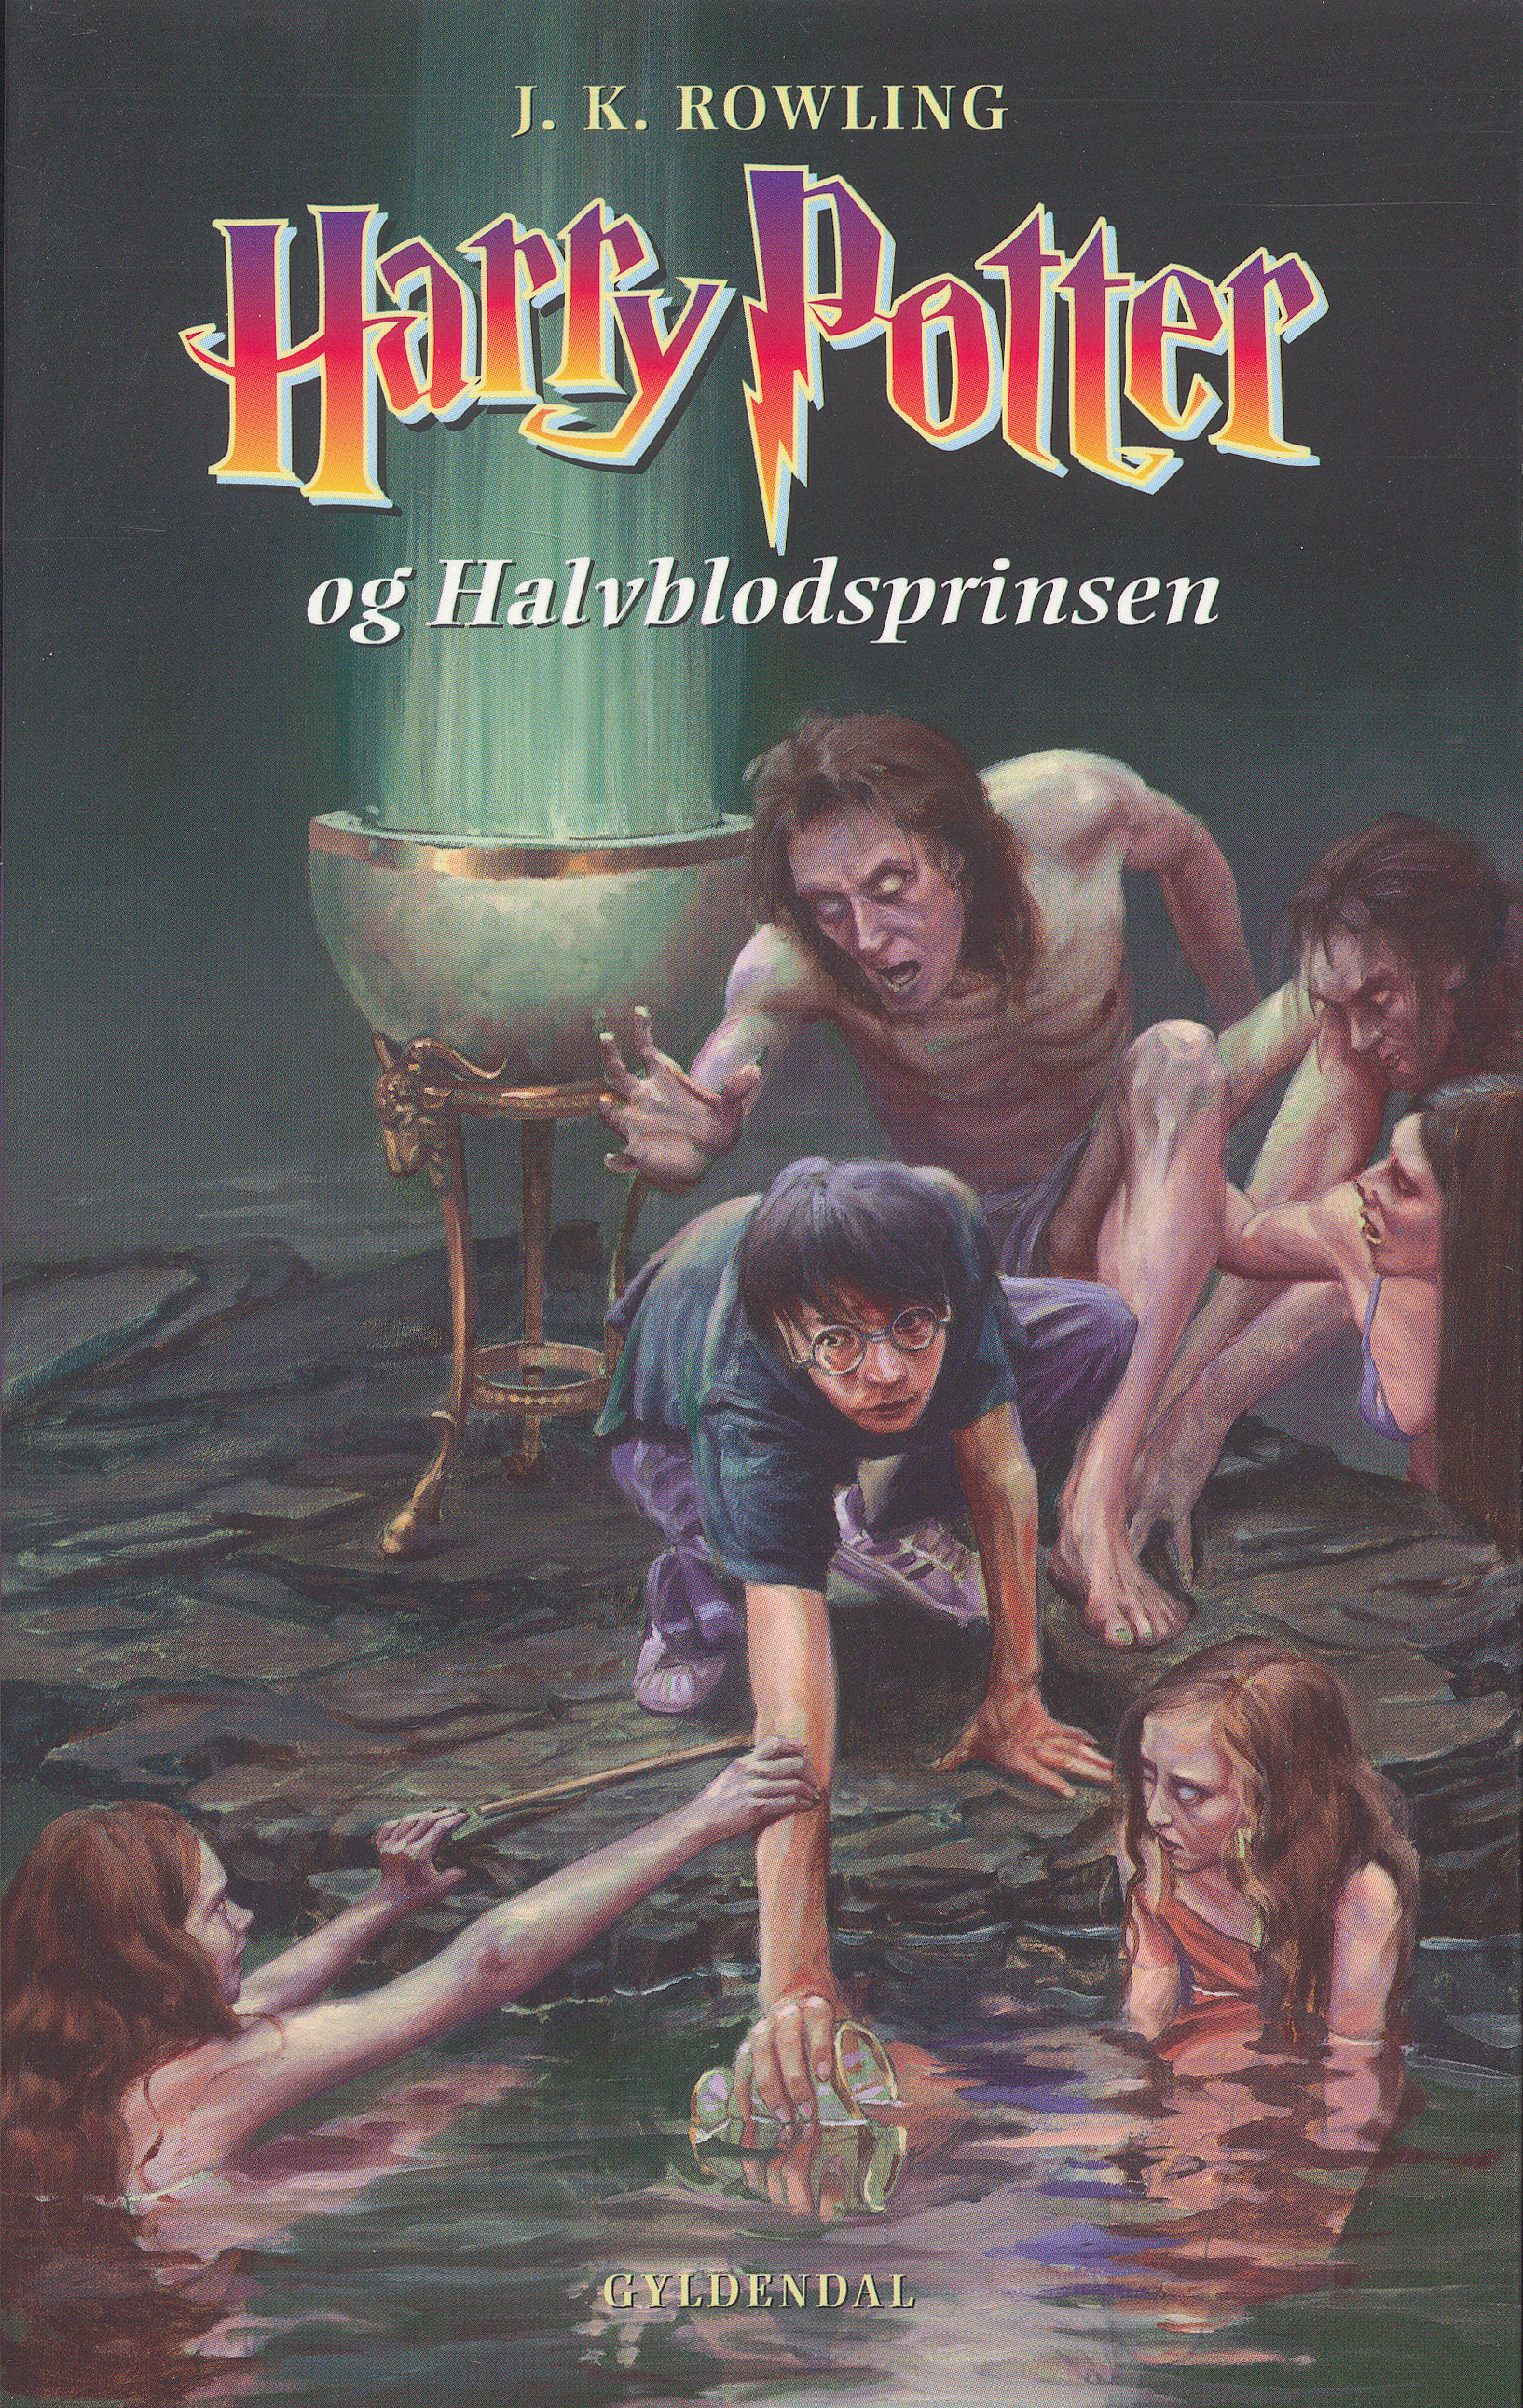 'Half-Blood Prince' Danish edition